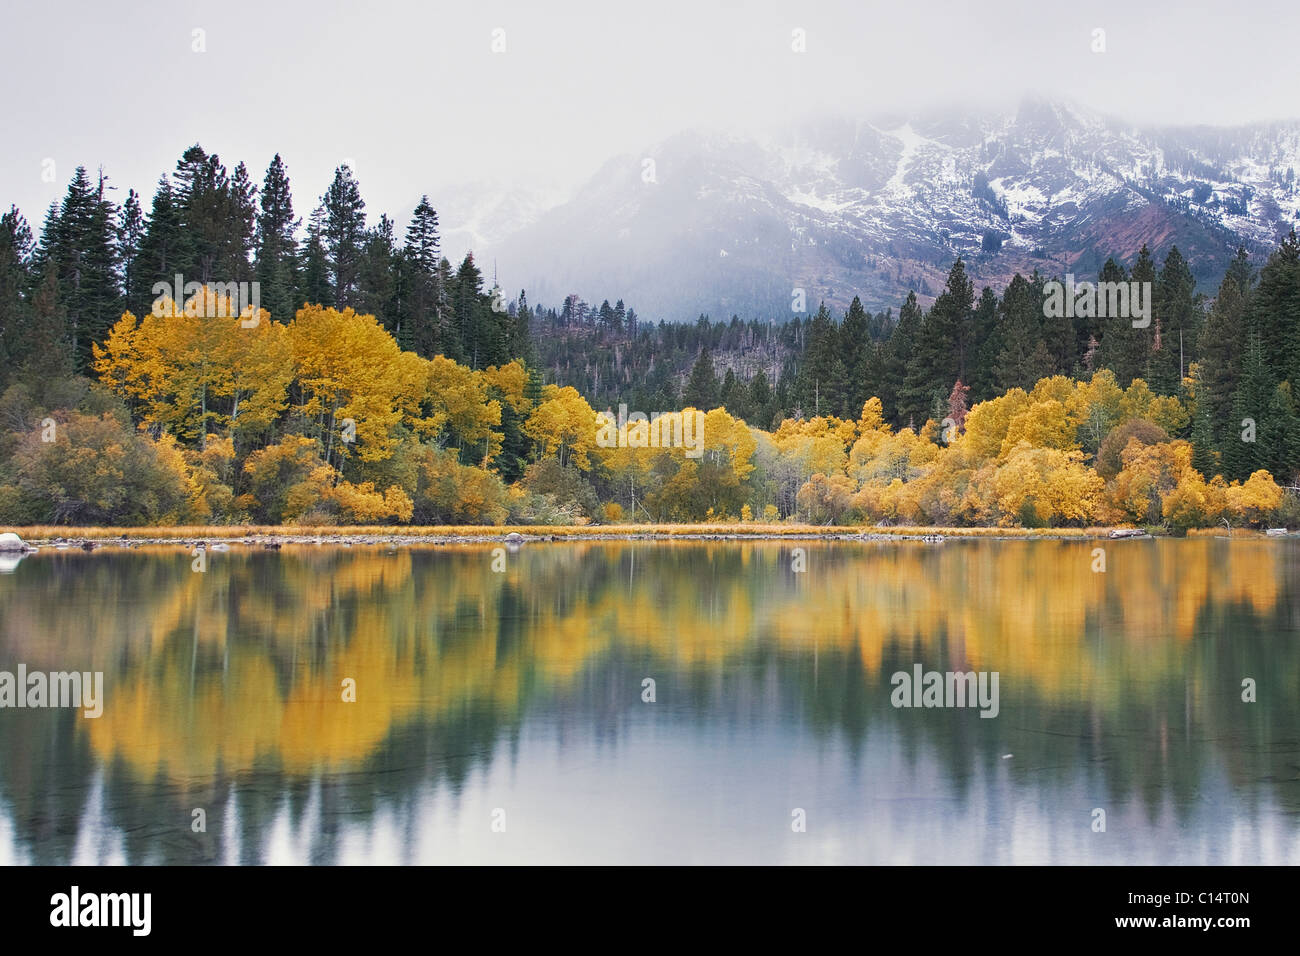 Mount Tallac with new snow and fall foliage reflecting in Fallen Leaf lake near Lake Tahoe in California - Stock Image